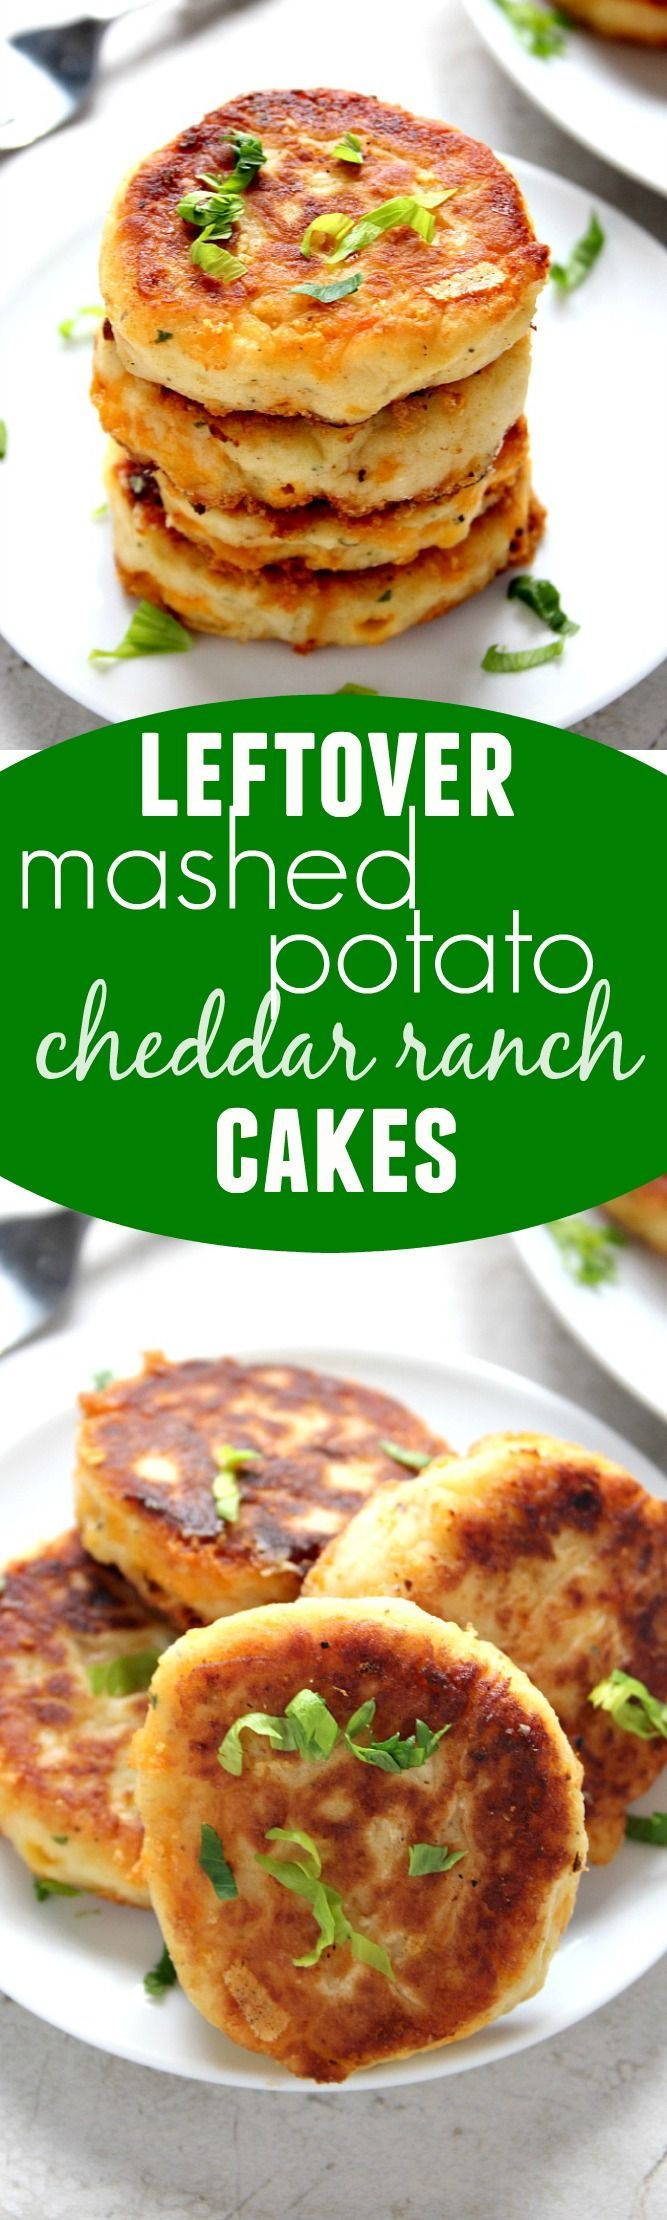 Leftover Mashed Potato Cheddar Ranch Cakes  ~ The best use for your leftover mashed potatoes! Crispy cakes filled with cheese and ranch seasoning. Just 5 ingredients and 20 minutes is all you need to make them! Perfect for a snack, side, or appetizer!